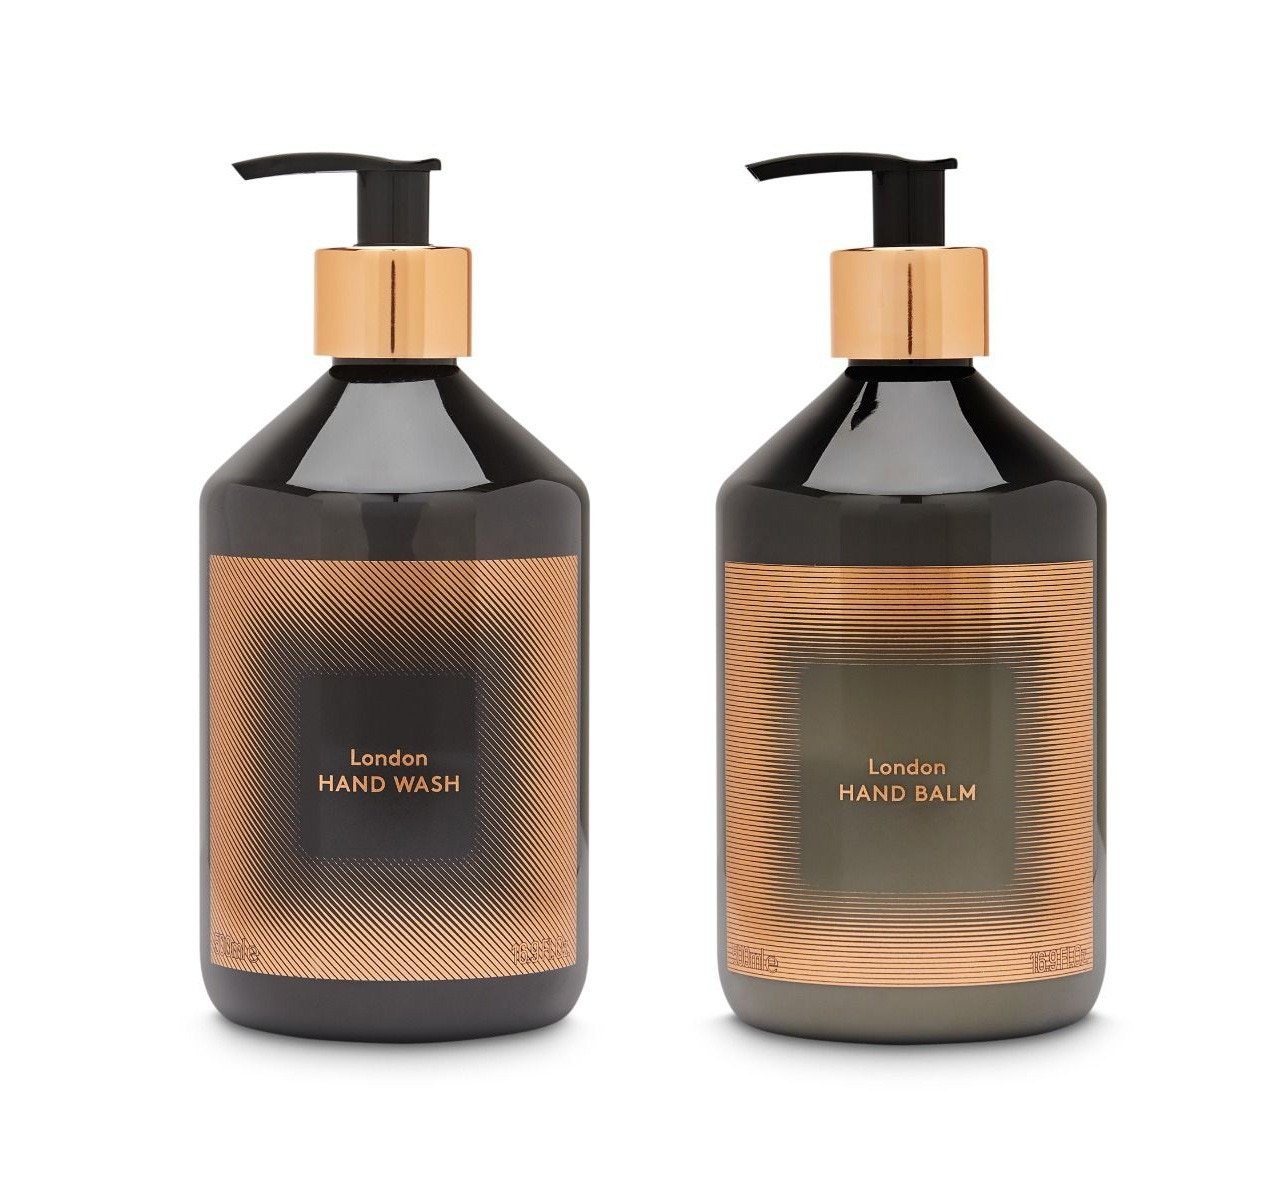 CLEARANCE - Tom Dixon Eclectic London Hand Wash Giftset